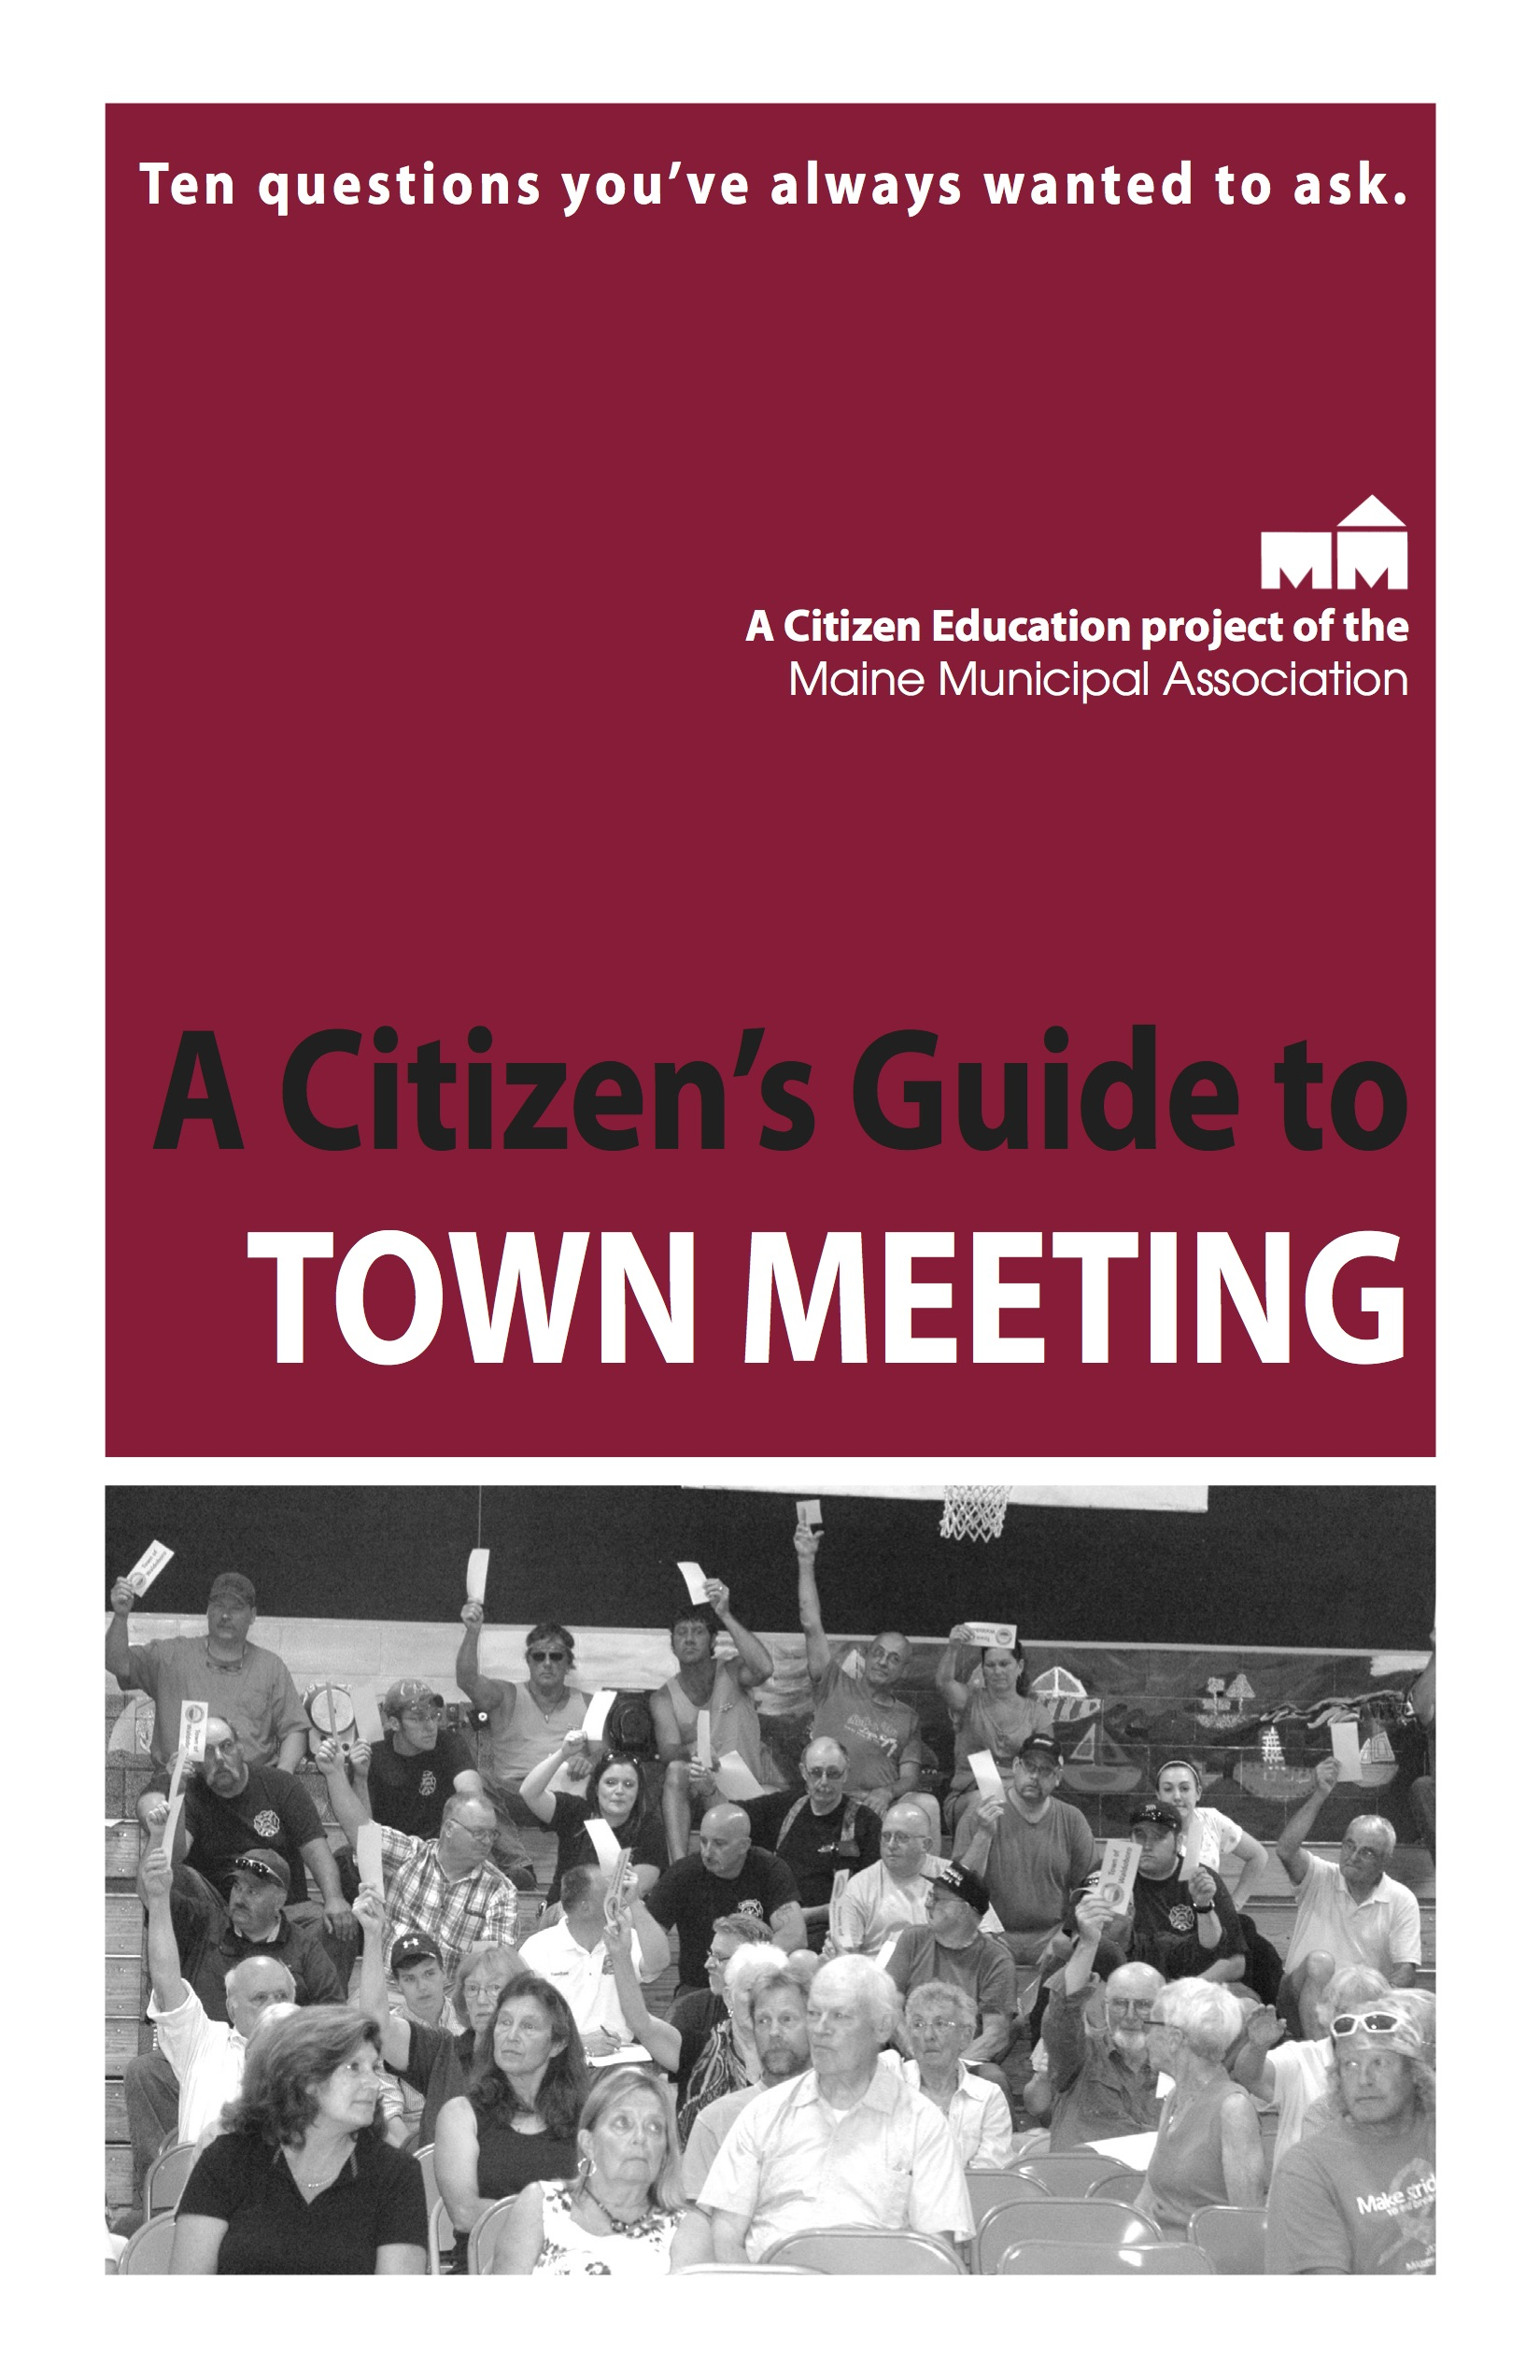 Click here to learn more about how town meetings work.